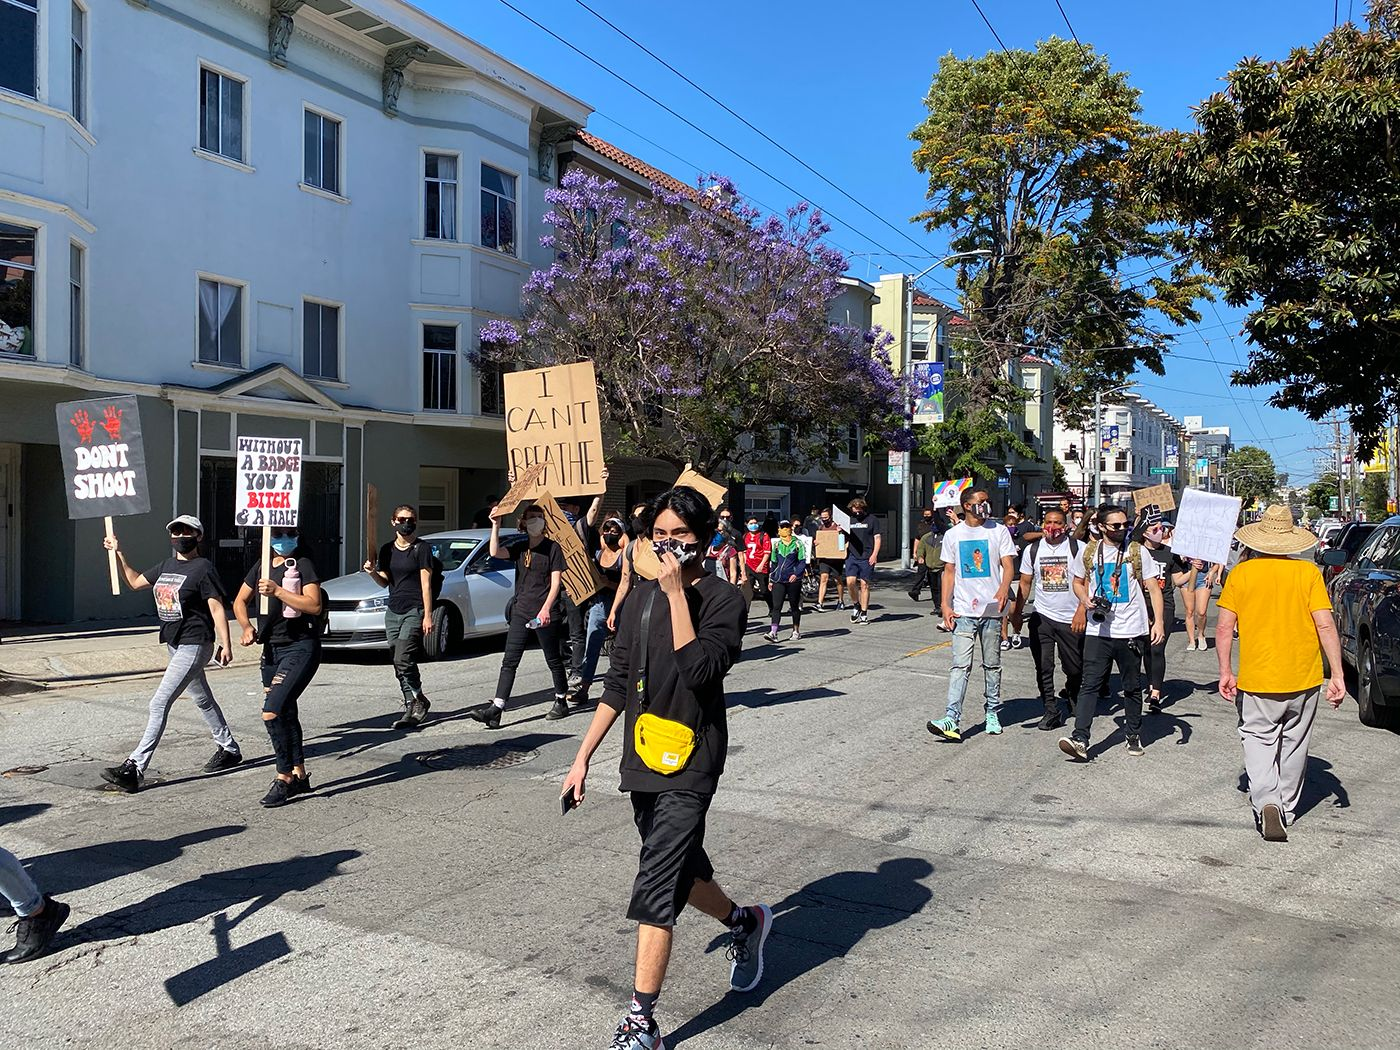 Friday Protests In Mission and Castro, and Critical Mass Ride Kicks Off on Embarcadero